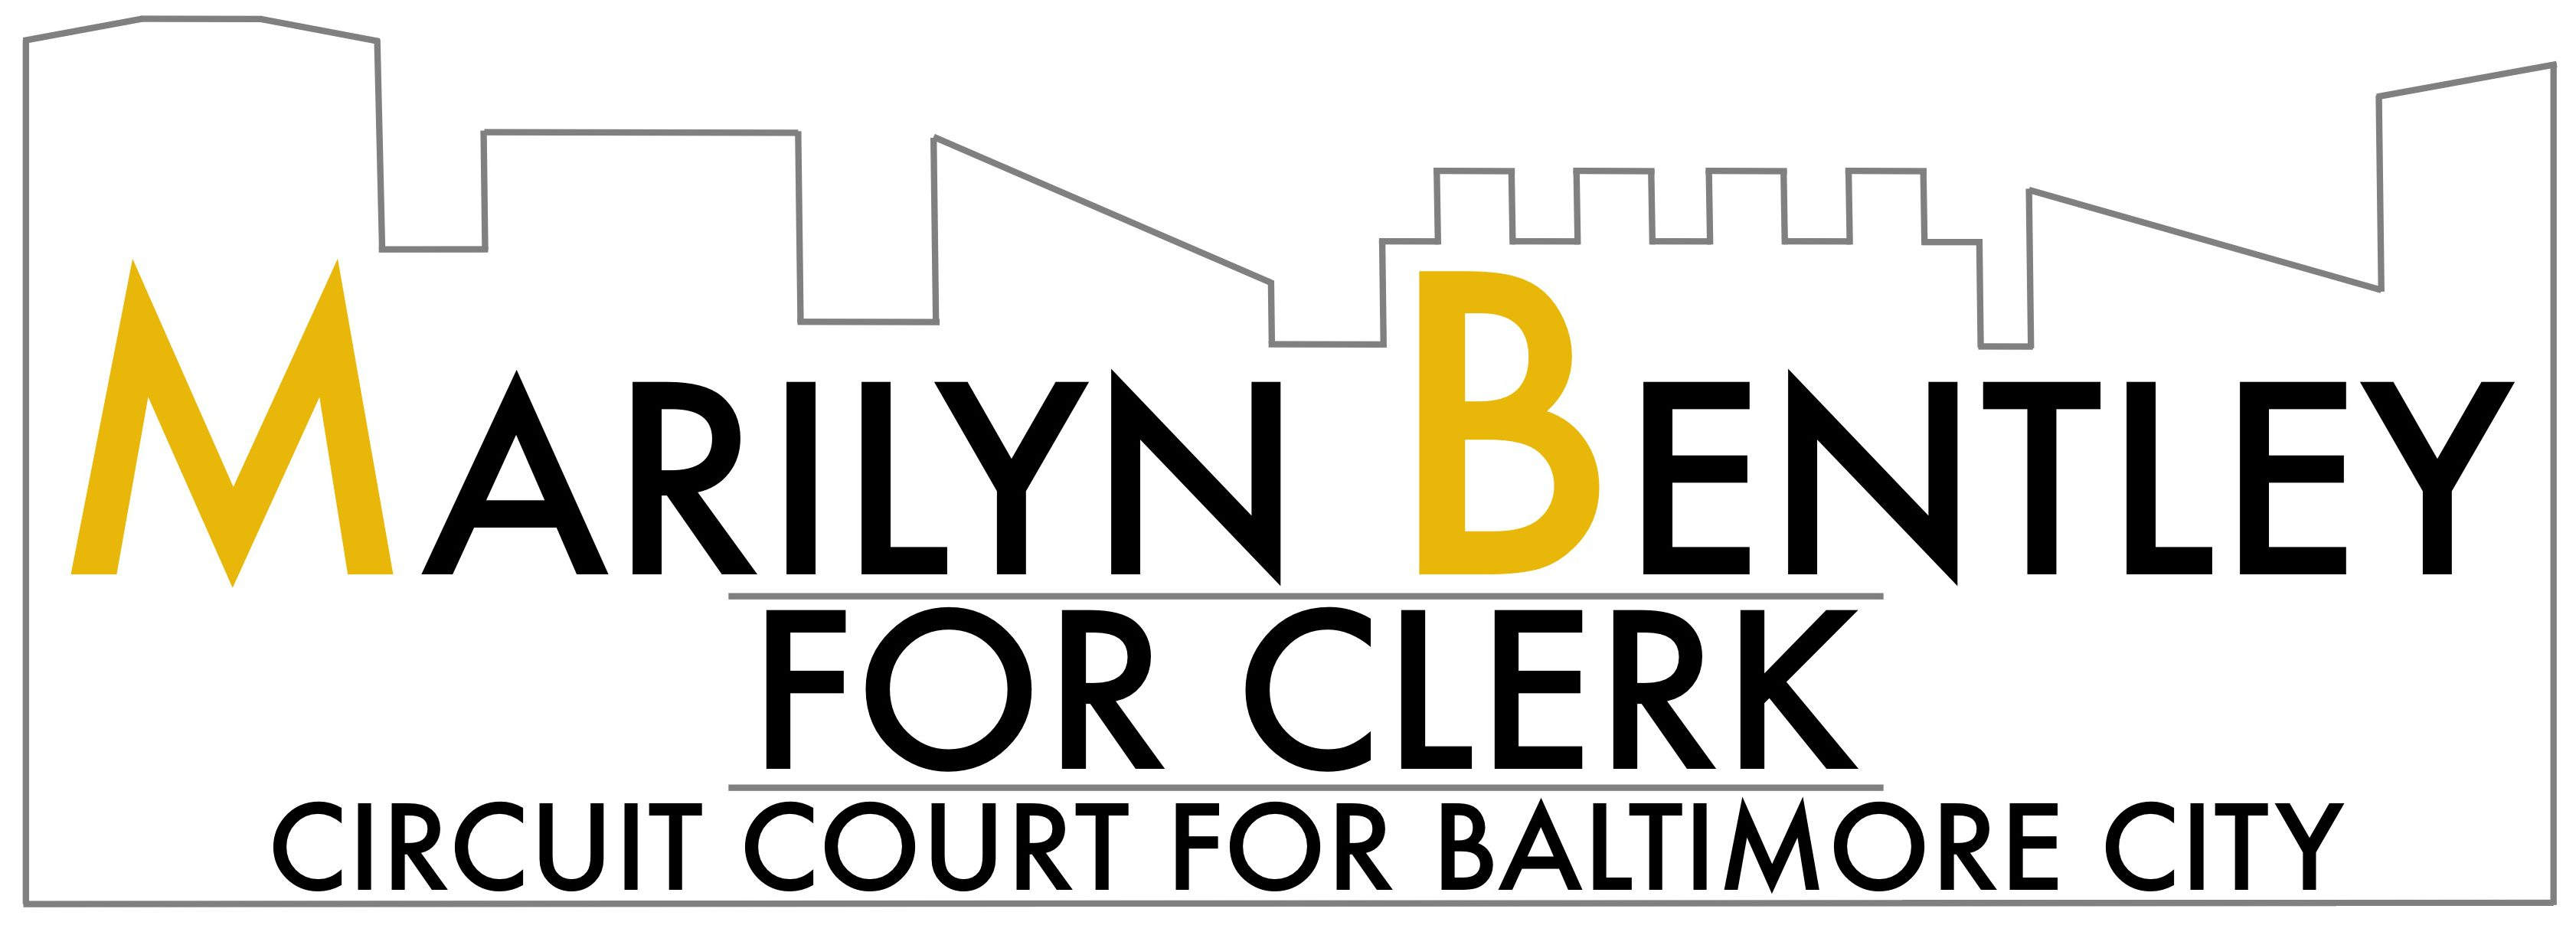 Marilyn Bentley for Clerk of the Baltimore City Circuit Court